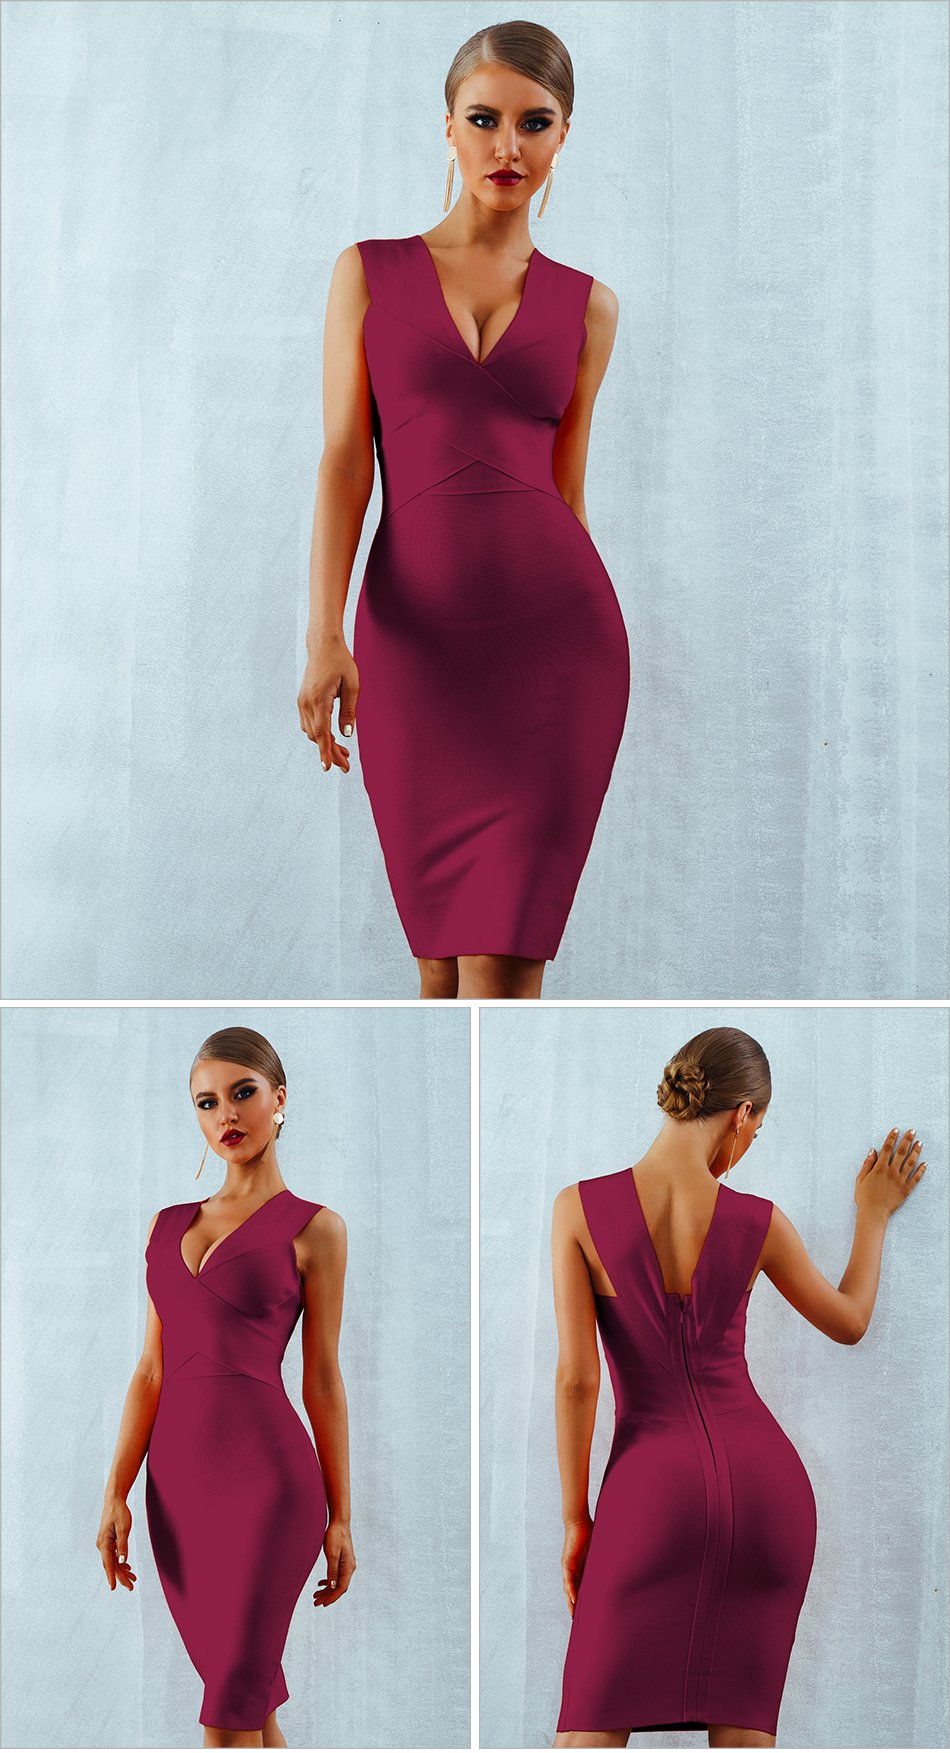 ADYCE Summer Women Bandage Dress Vestidos Verano 2019 Orange Red Tank Sexy Deep V-Neck Sleeveless Bodycon Celebrity Party Dress 7